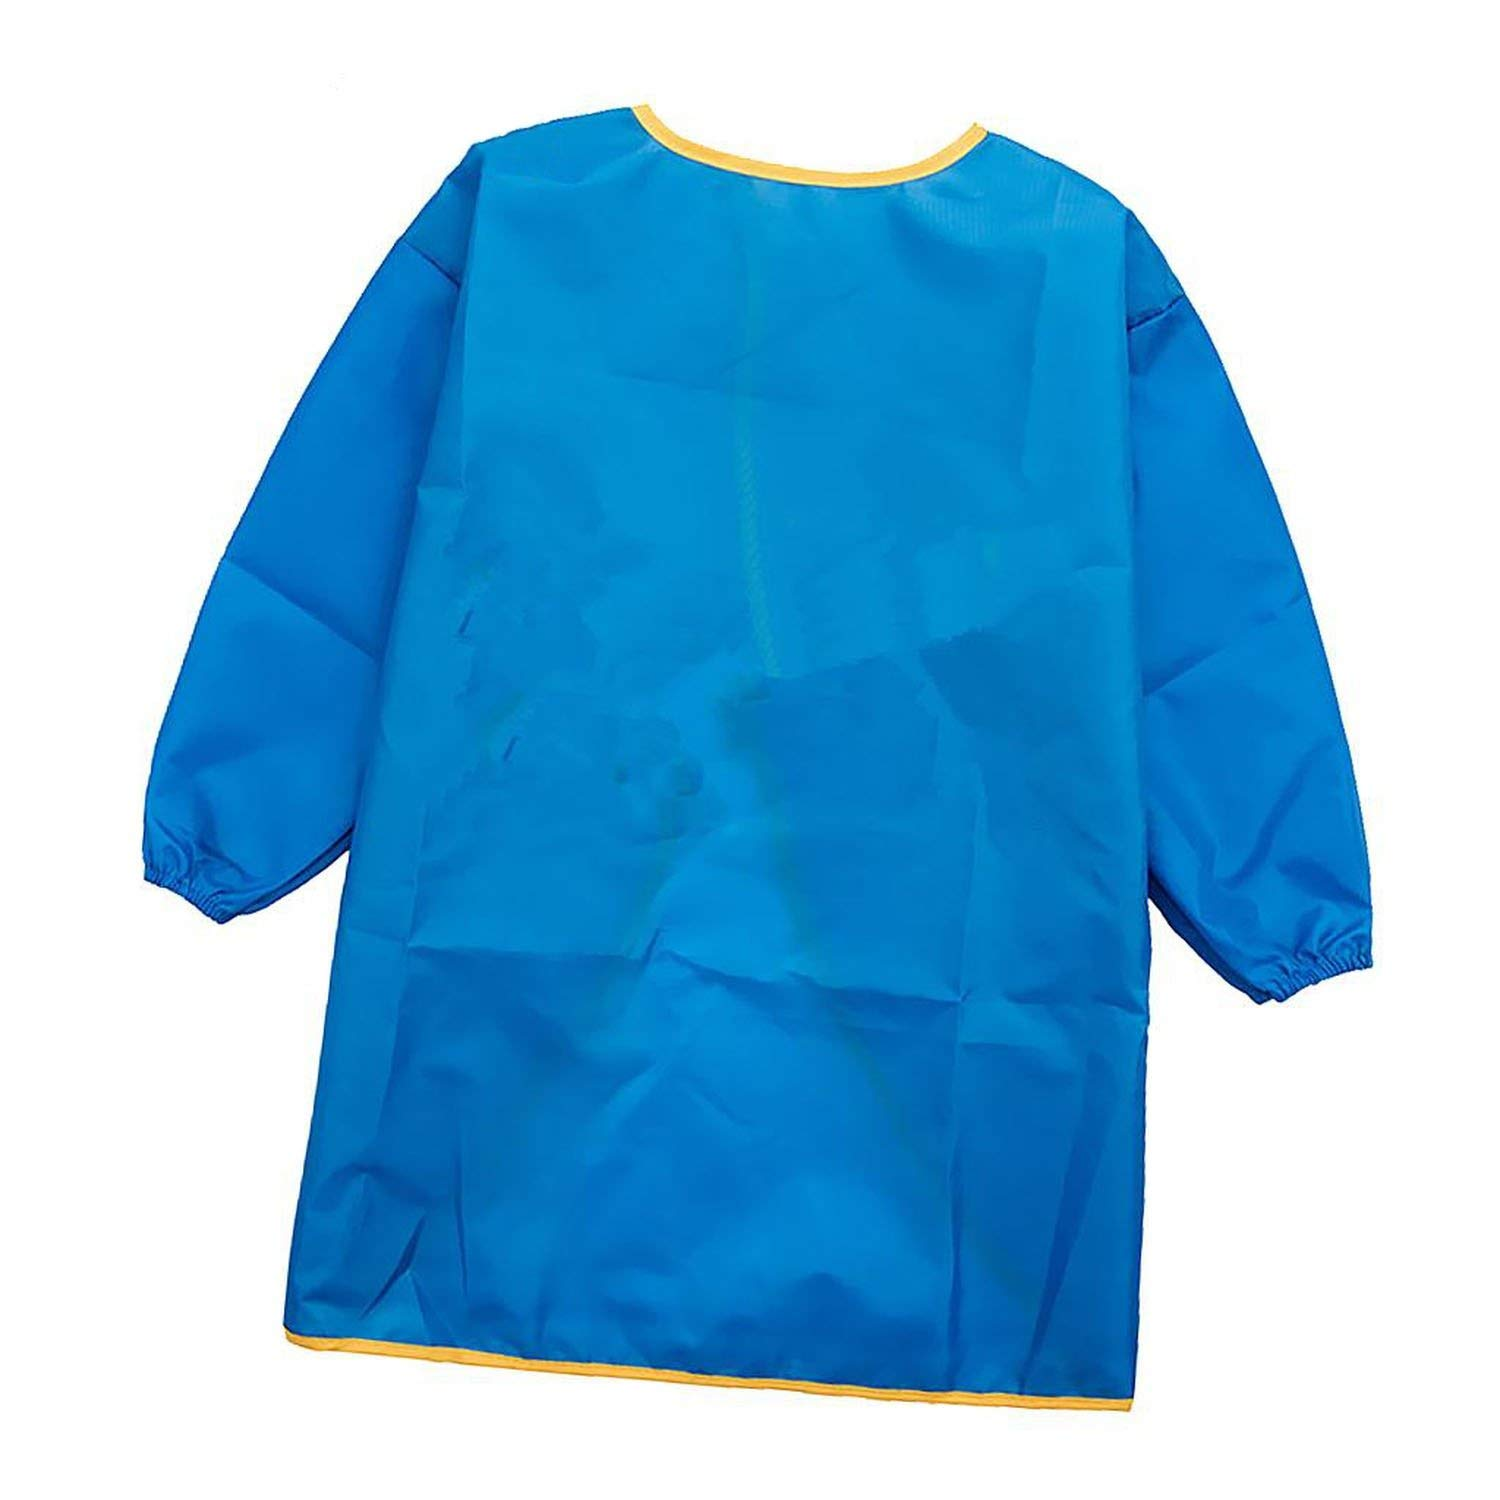 WBeauty Kids Apron Drawing Painting Waterproof Smock Polyester Fiber Waterproof Fabric,S Blue